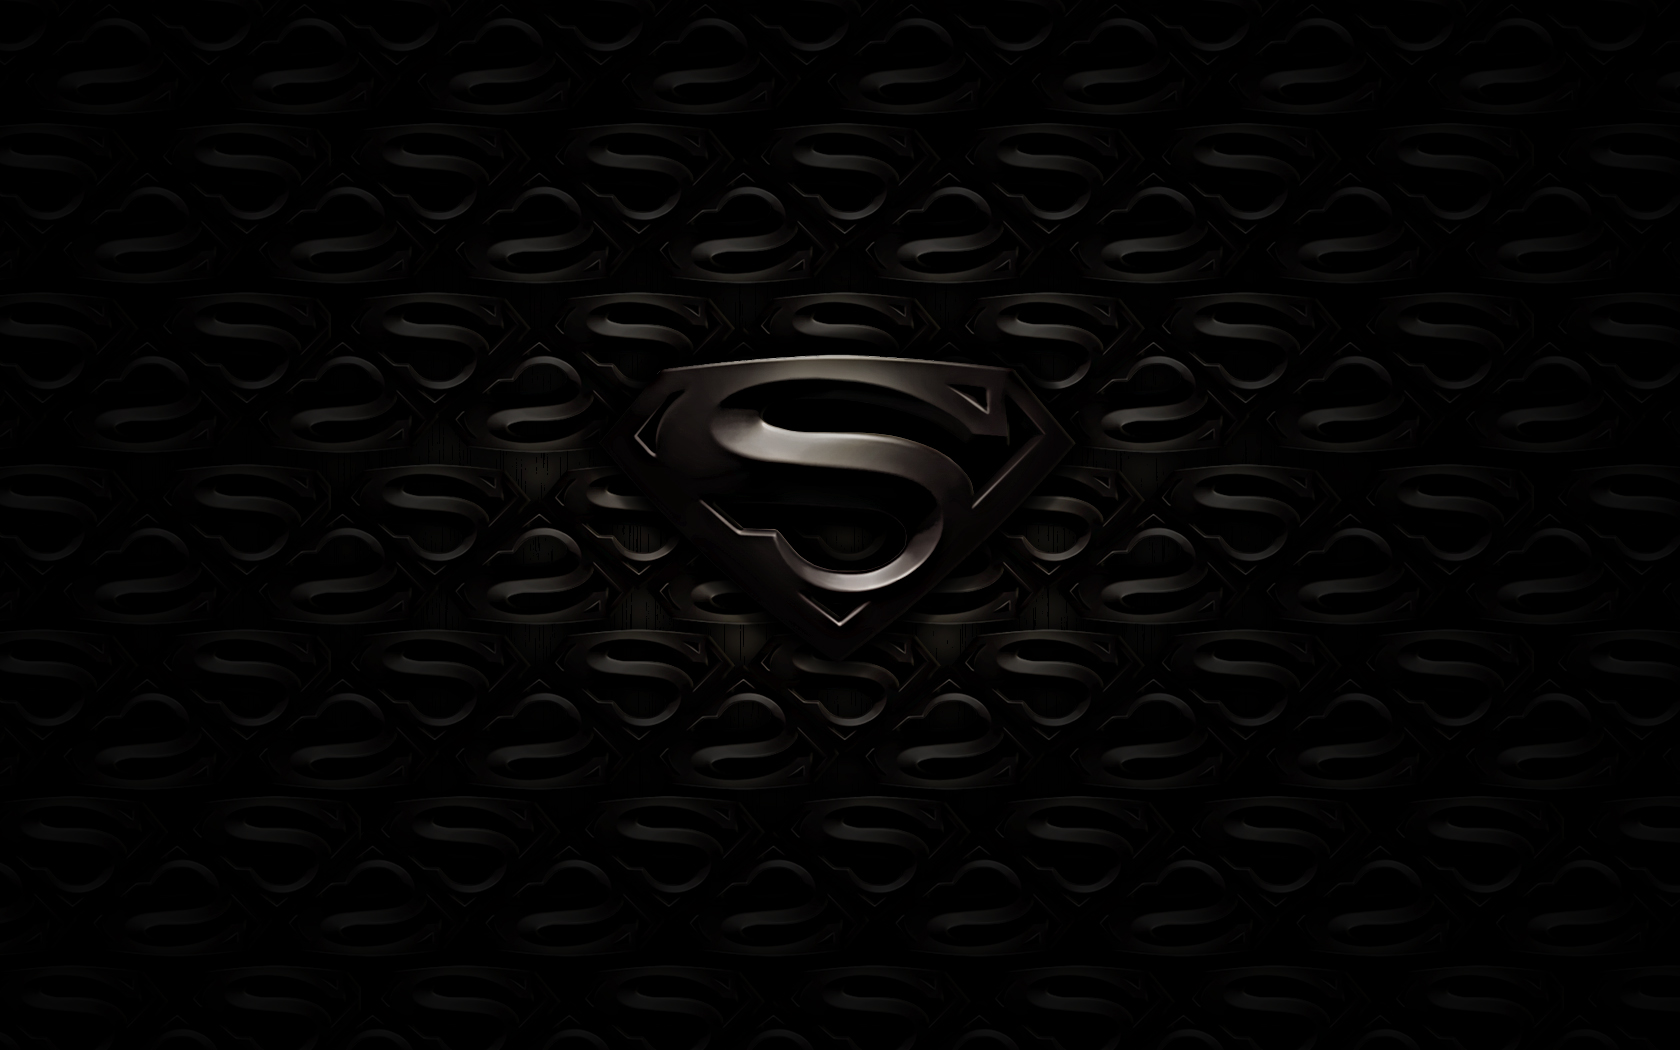 Under Armour 3d Wallpaper 1 Superman The Dark Side Hd Wallpapers Backgrounds